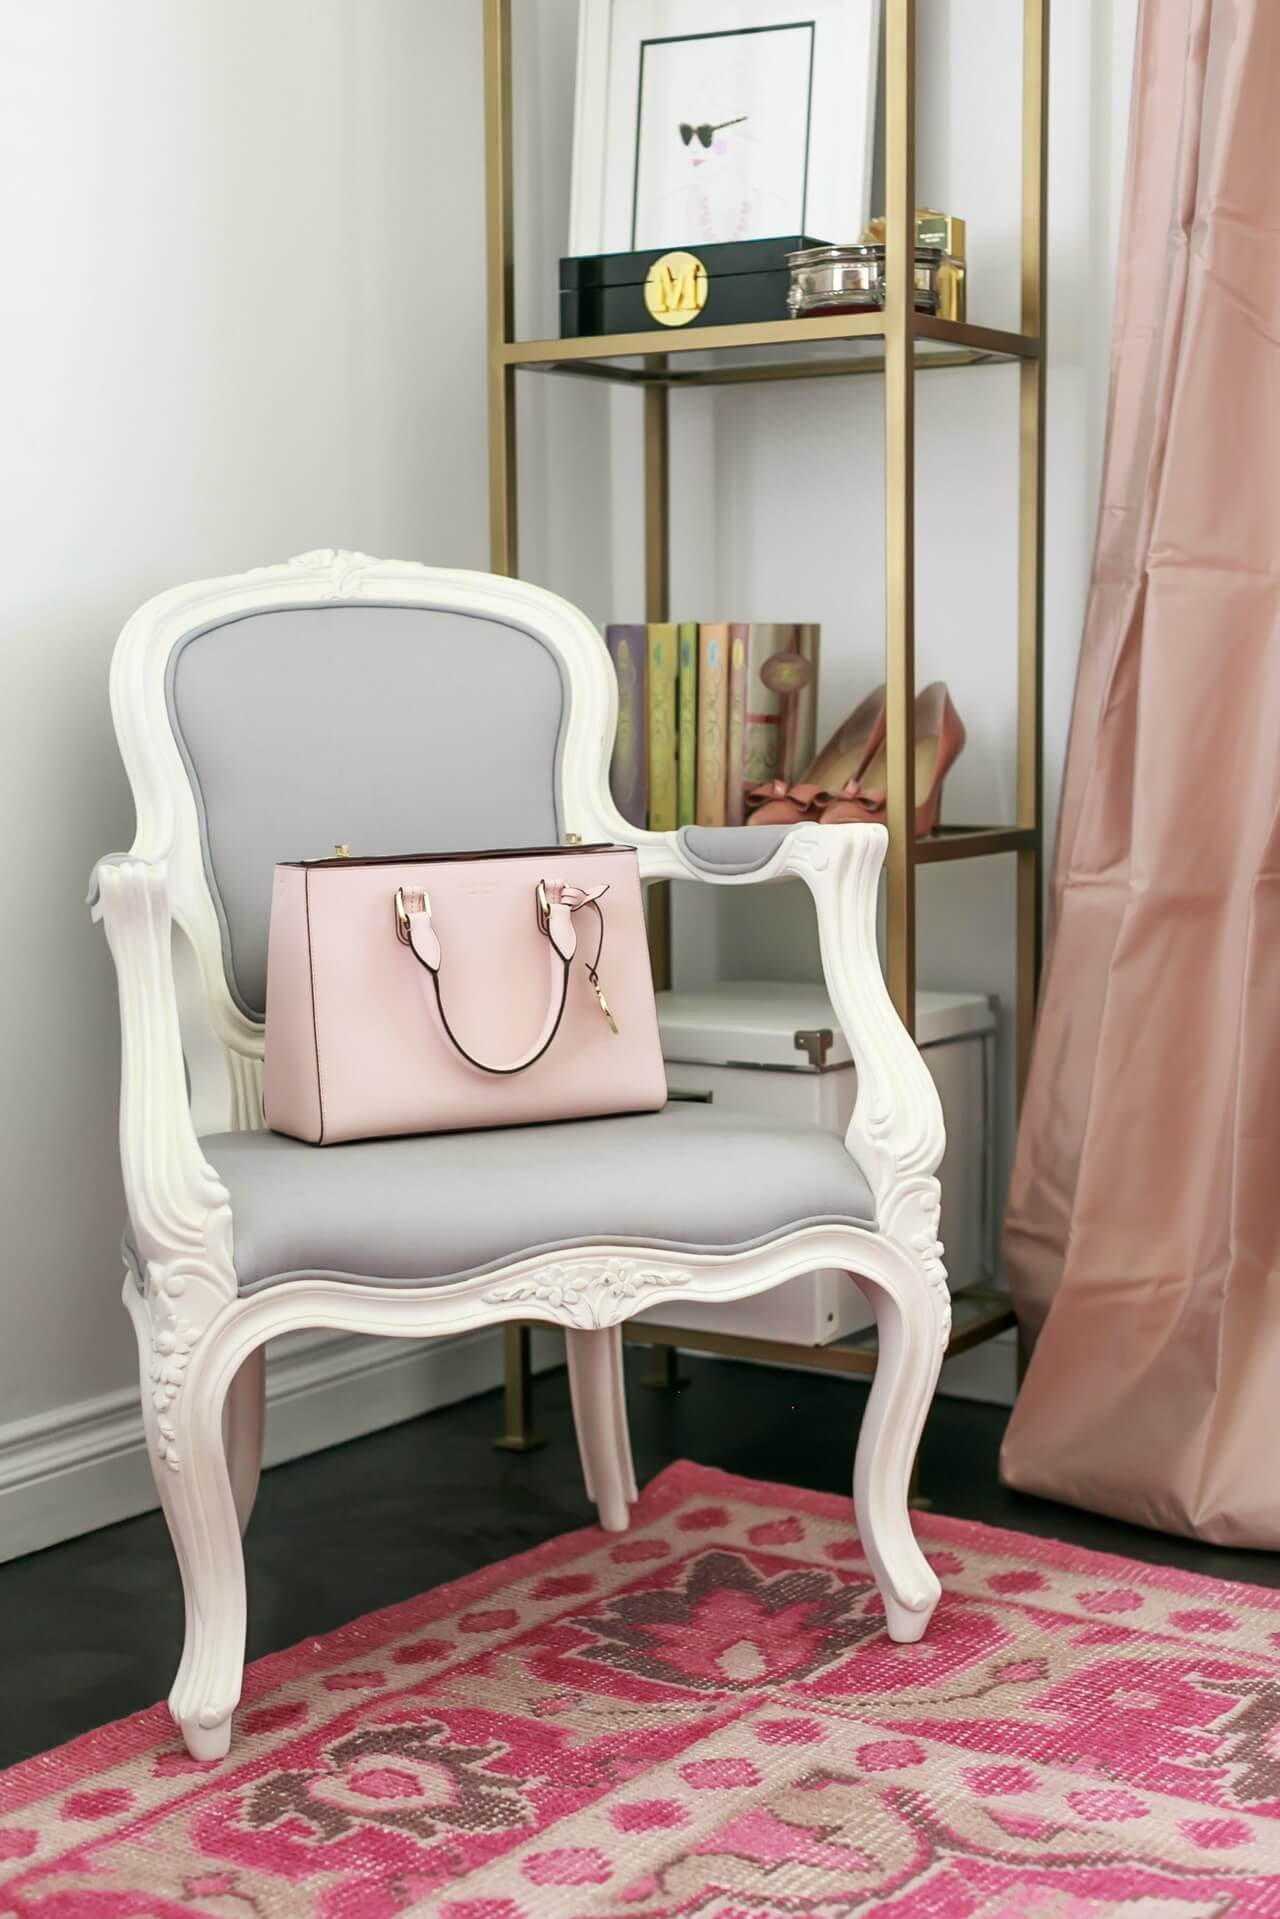 gray chair with pink purse sitting on top